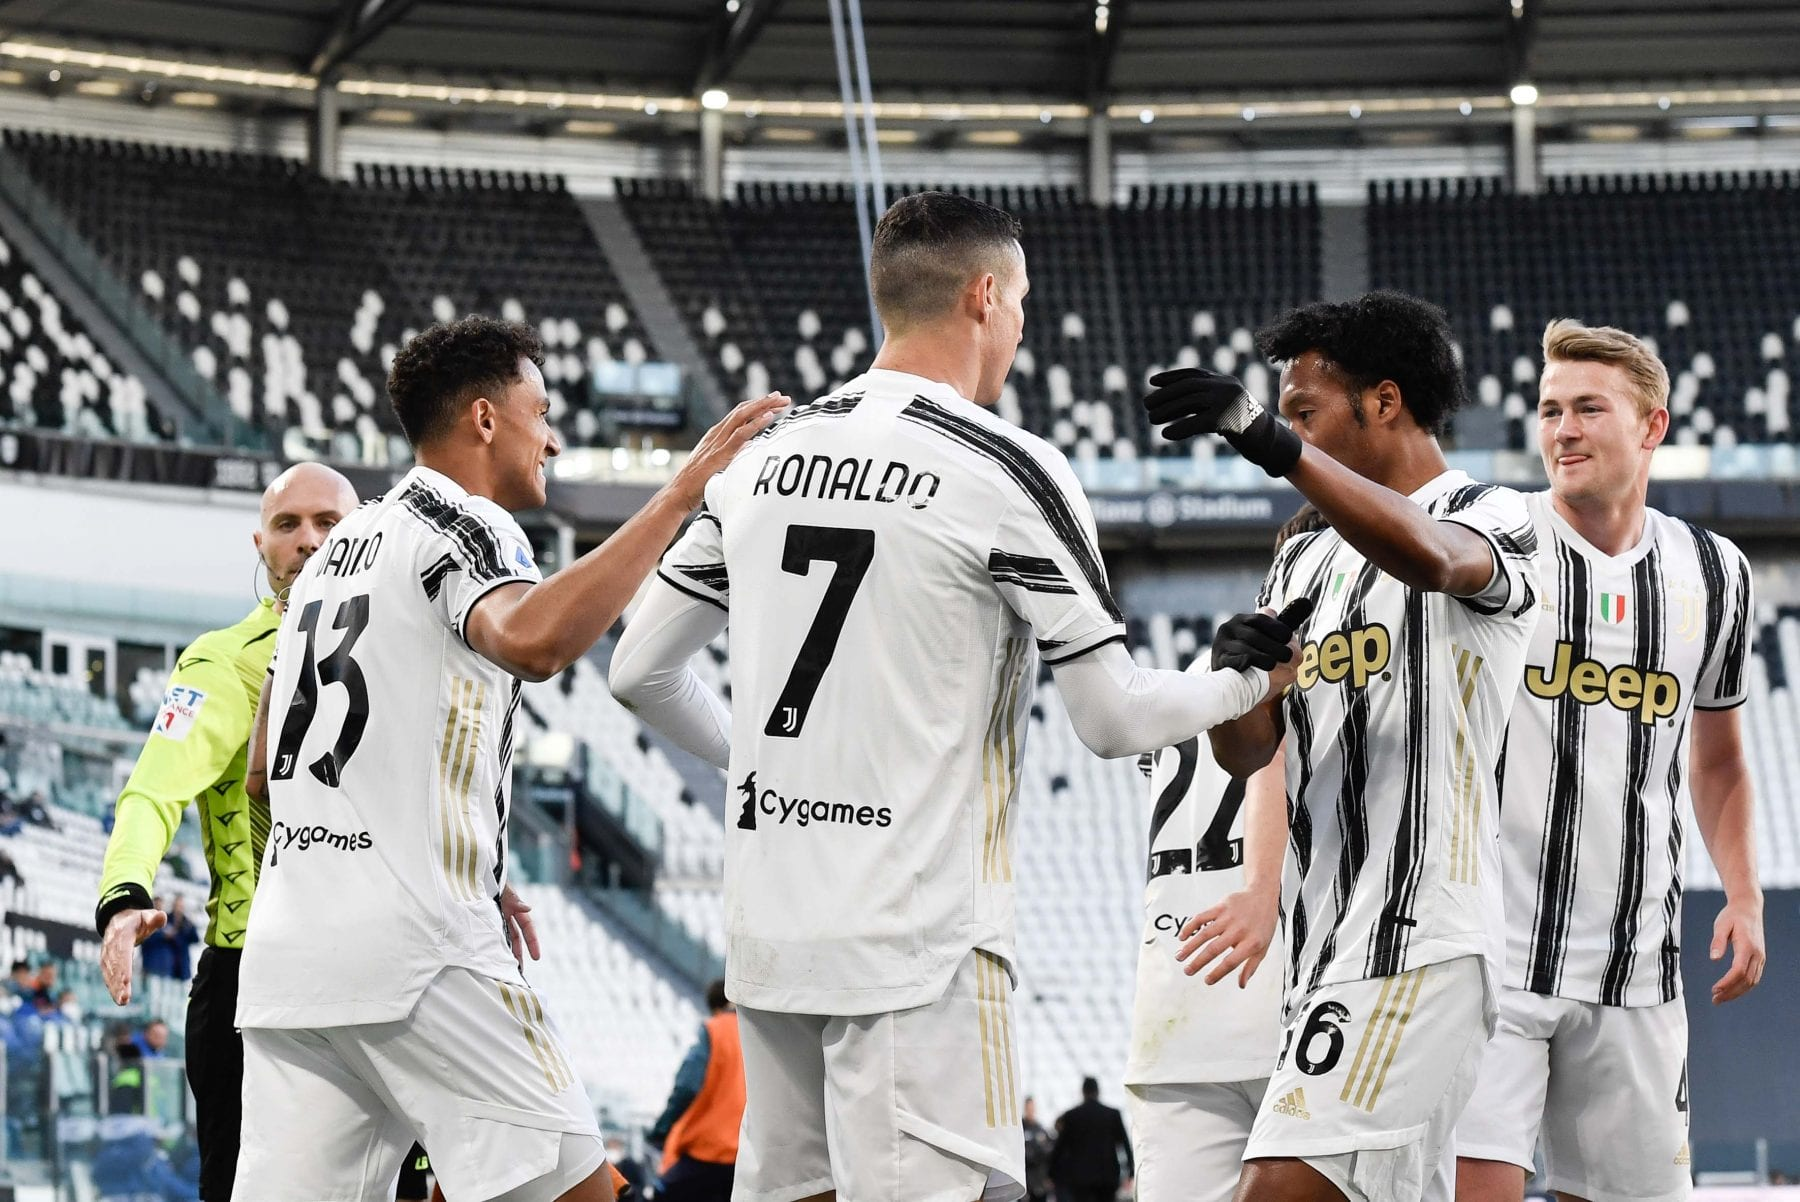 Paulo Dybala's comeback goal helps Juventus down Napoli 2-1 in Serie A »  FirstSportz